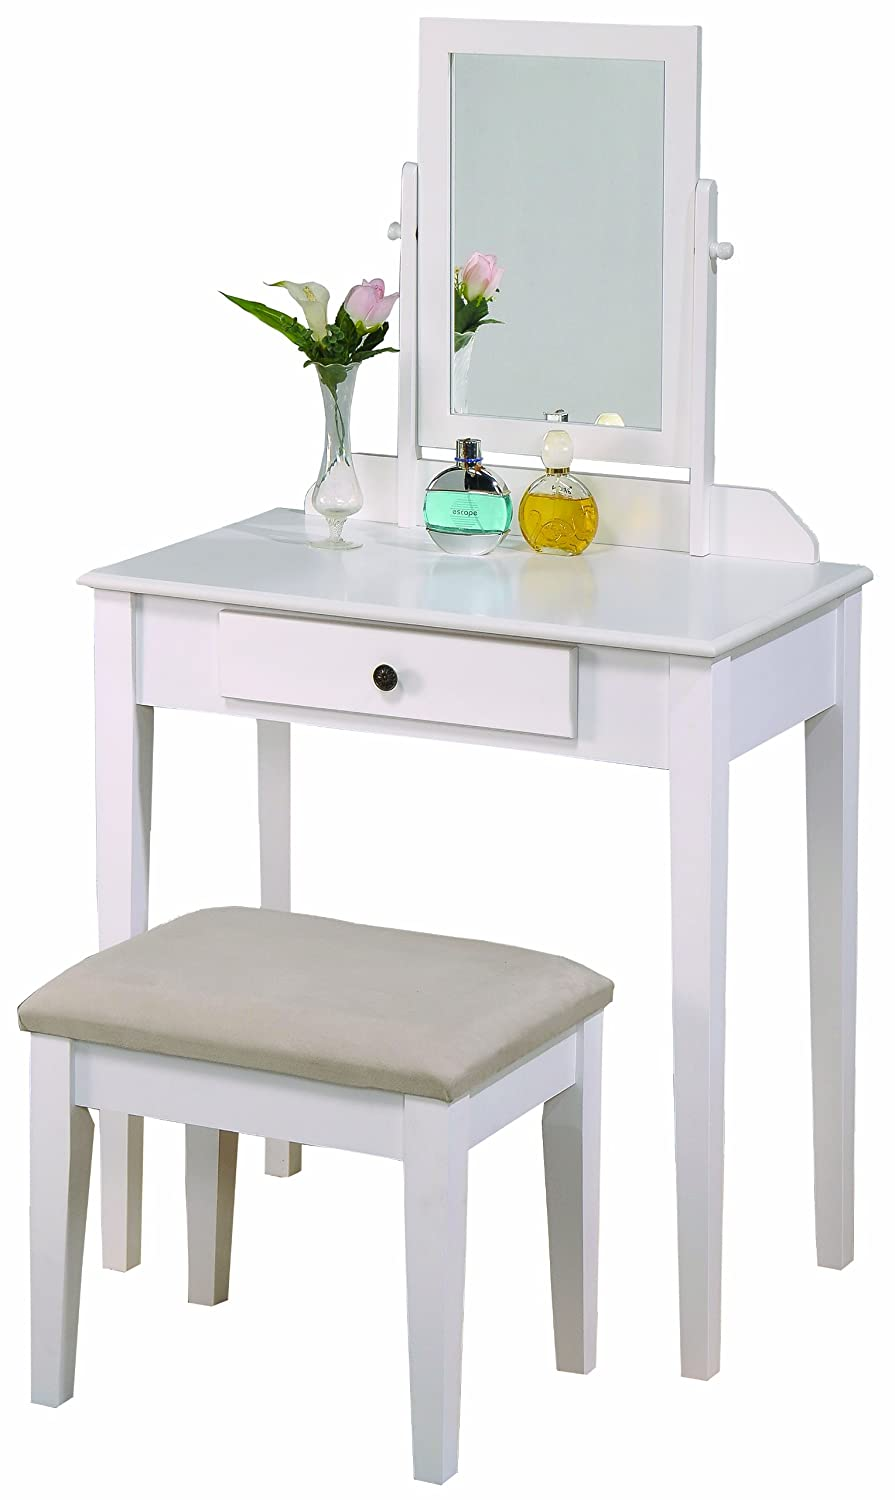 vanity set with stool and lighted mirror. Amazon com  Crown Mark Iris Vanity Table Stool White Finish with Beige Seat Kitchen Dining